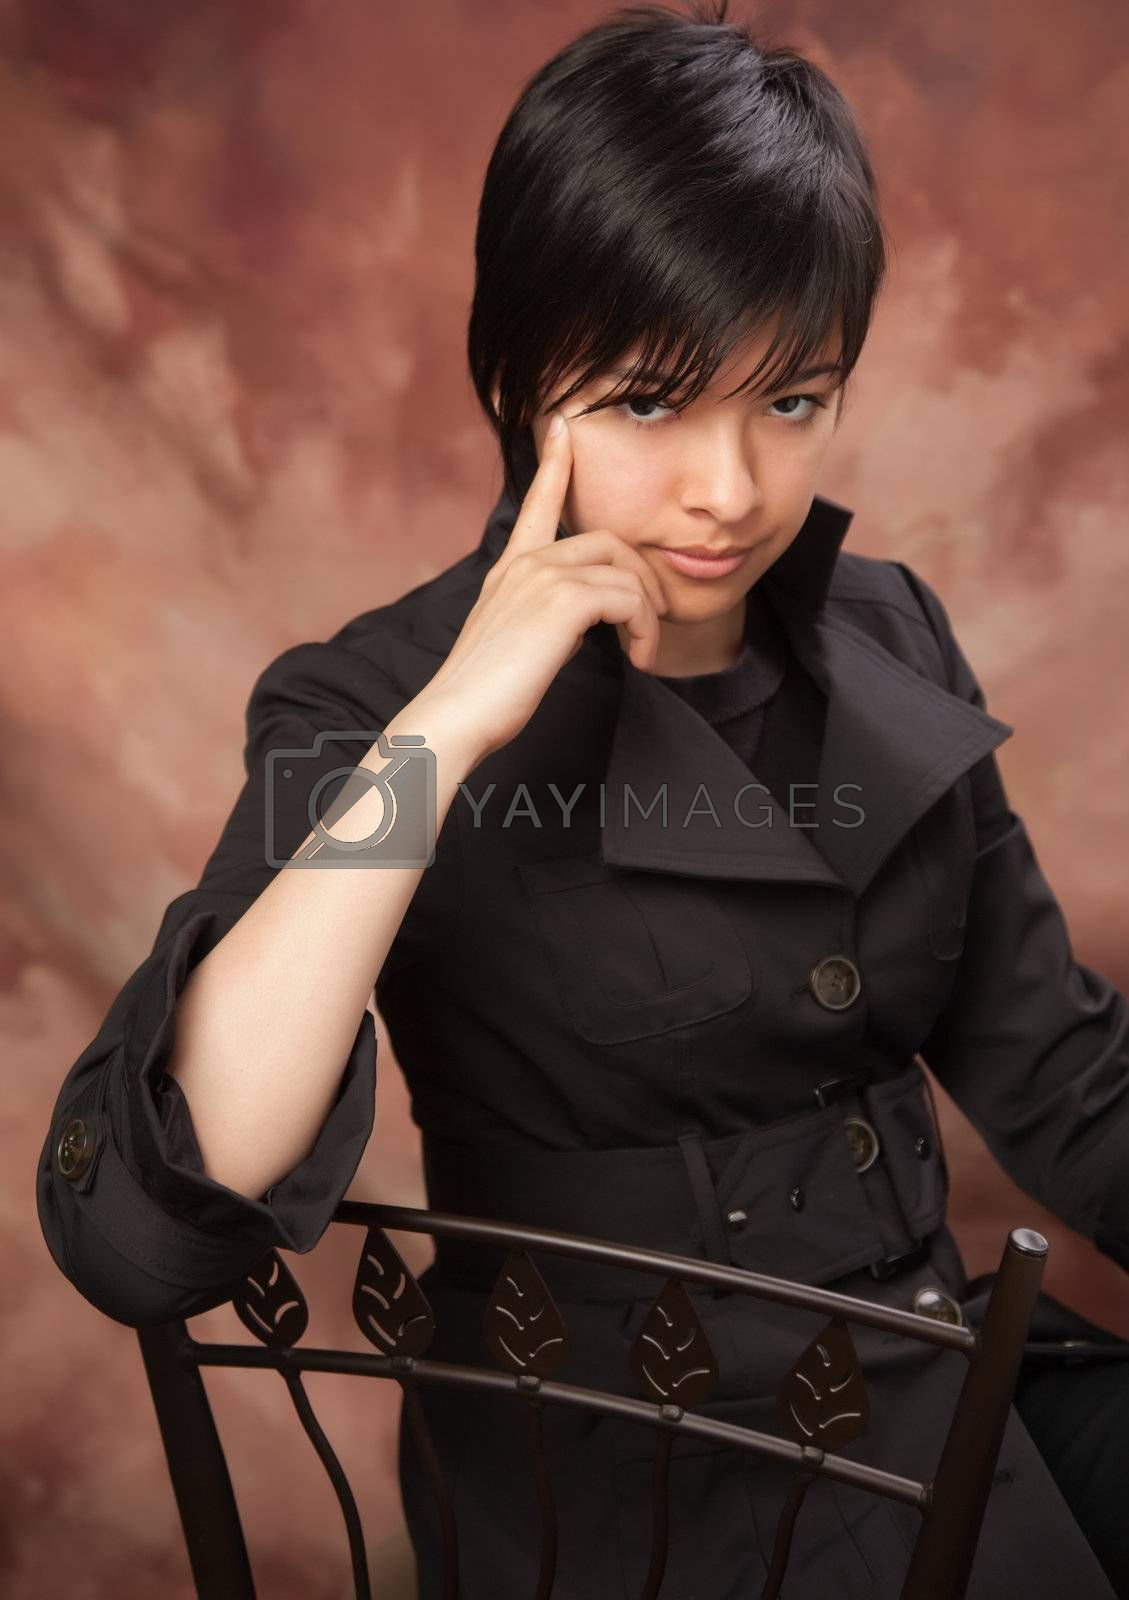 Multiethnic Girl Poses for Portrait by Feverpitched